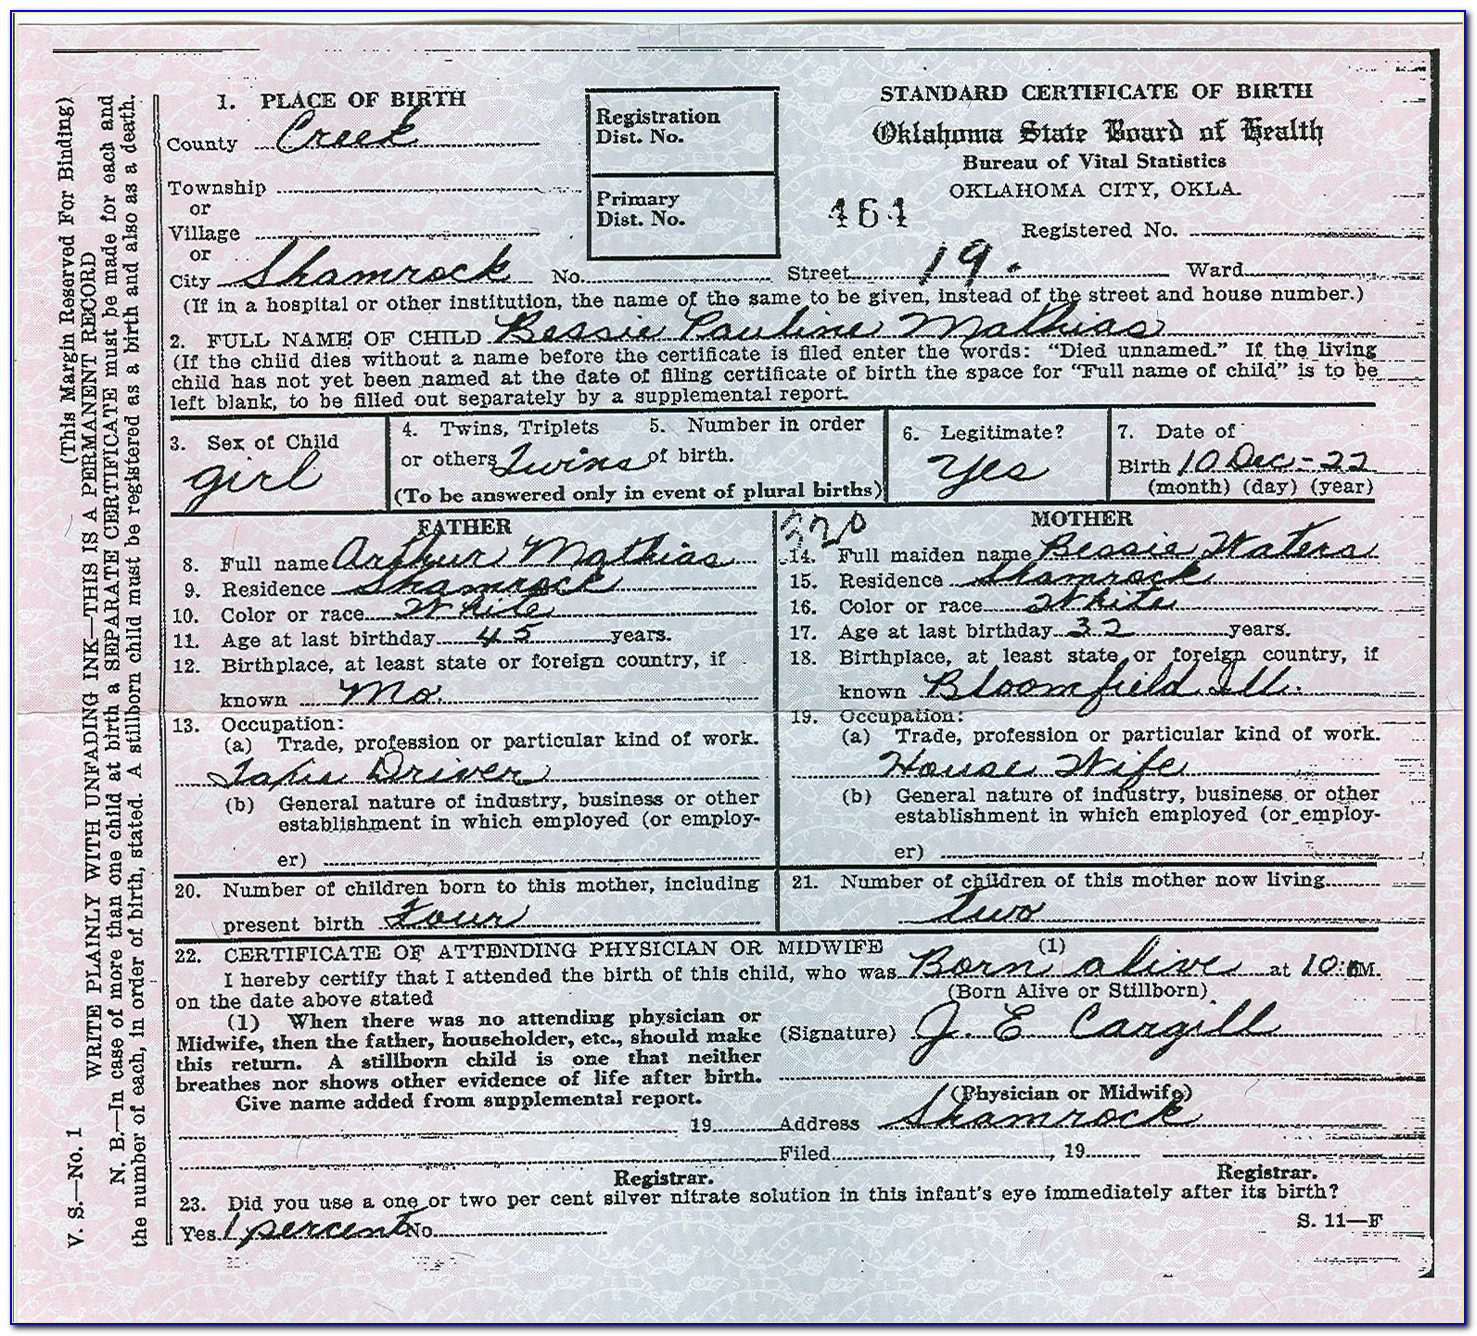 Where To Get My Birth Certificate In Oklahoma